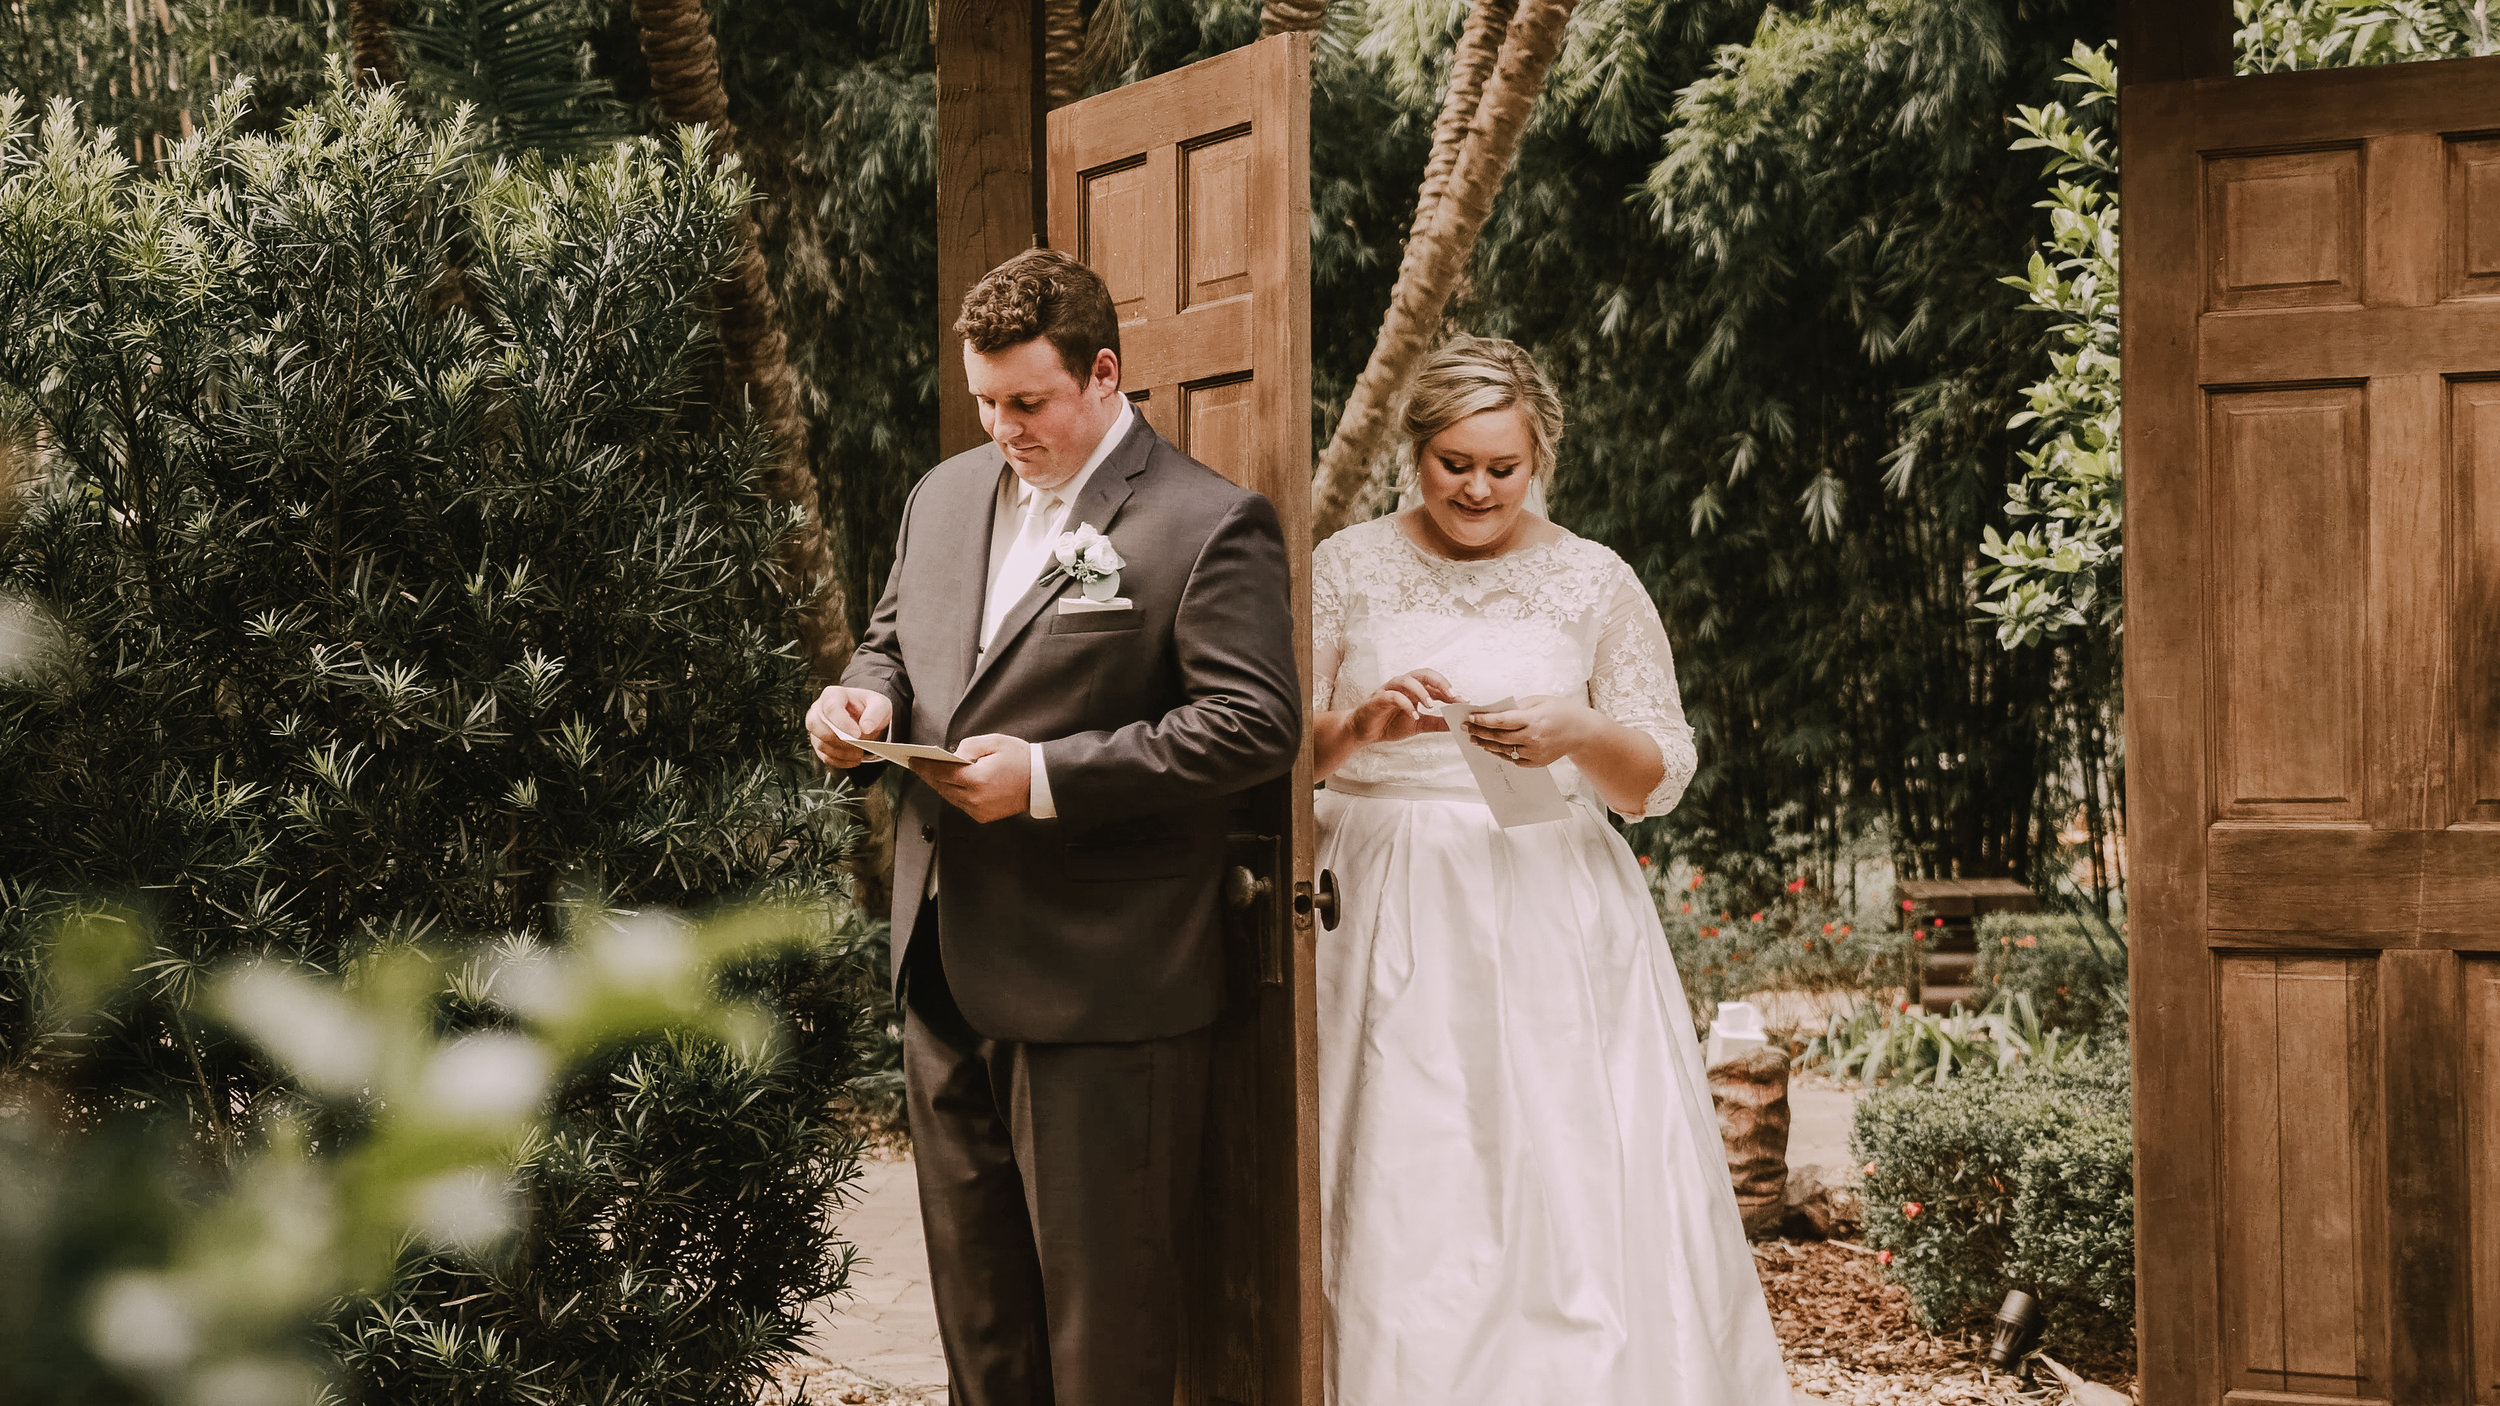 KYLE + LYNDSAY - The wedding of Kyle + Lindsay, captured at Club Lake Plantation in Apopka, FL.